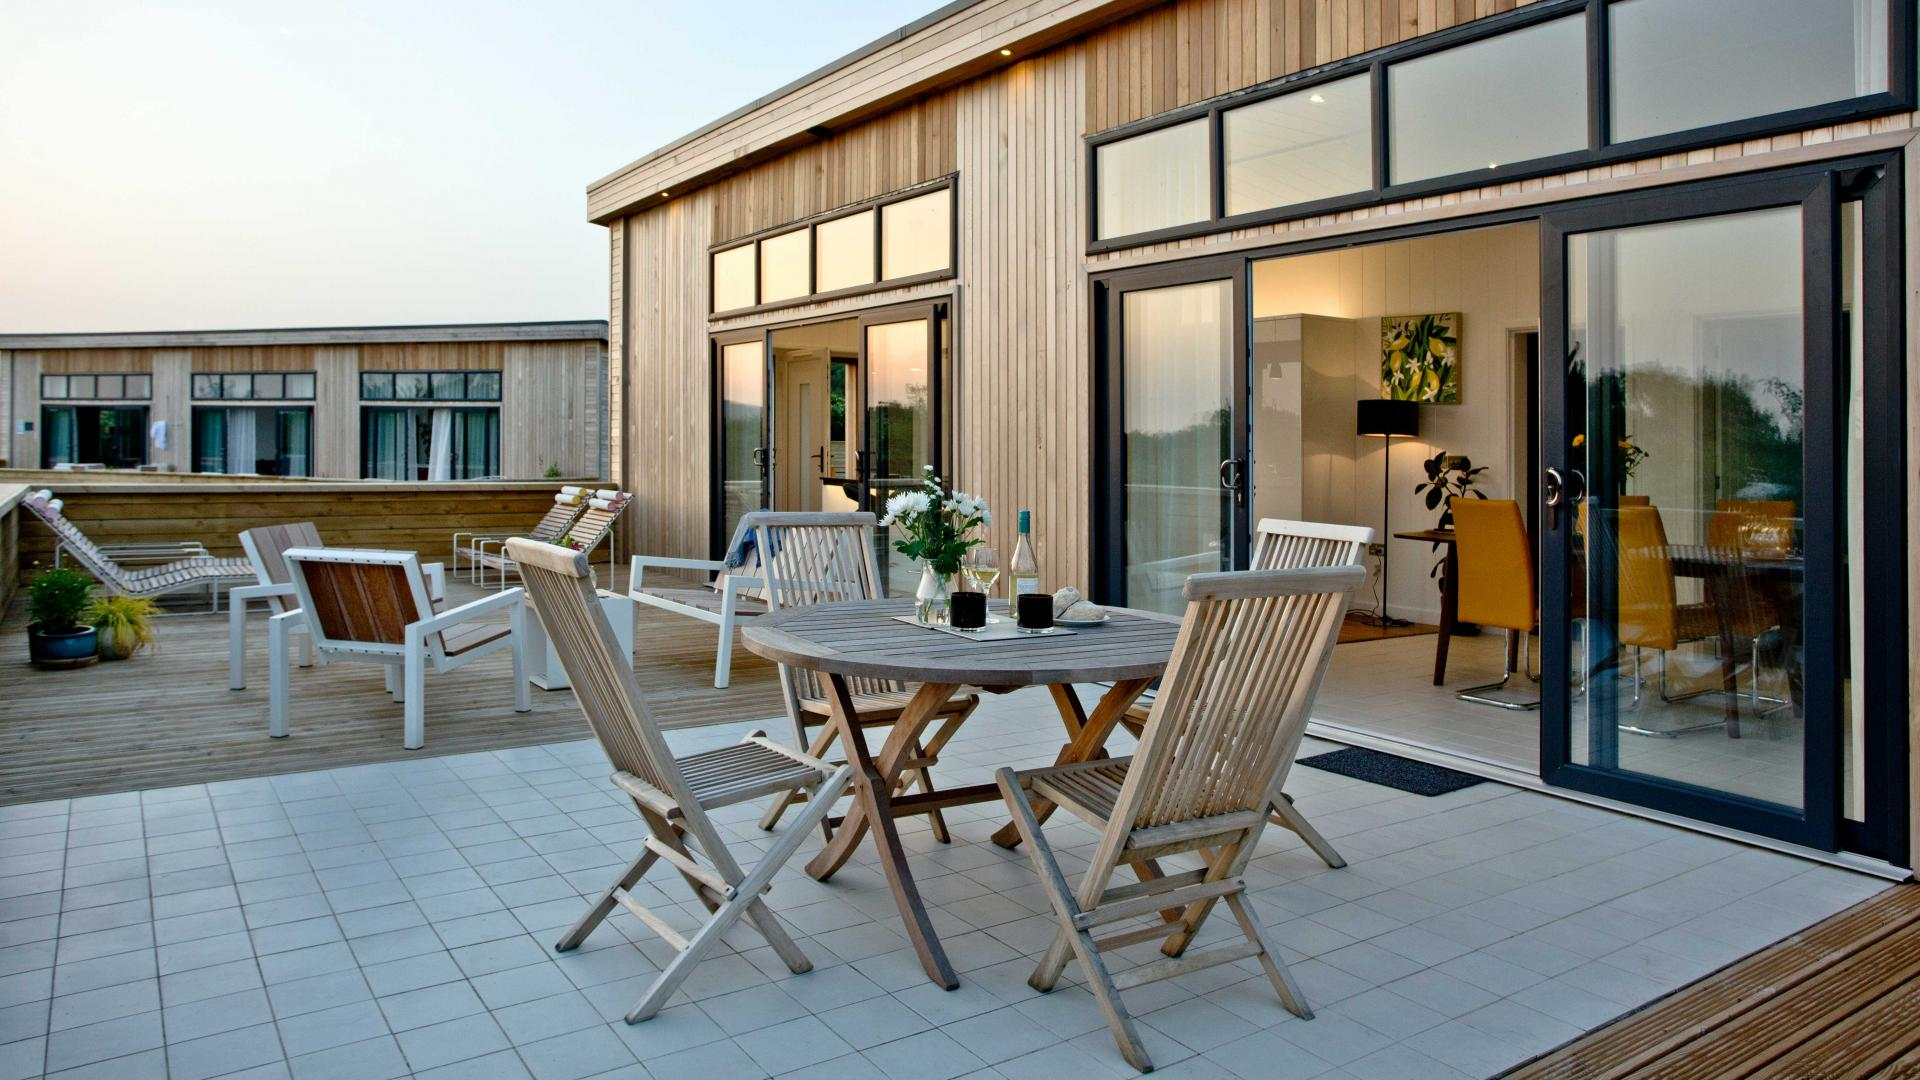 Best self catering accommodation in the UK: Burrington Eco Lodge, Somerset